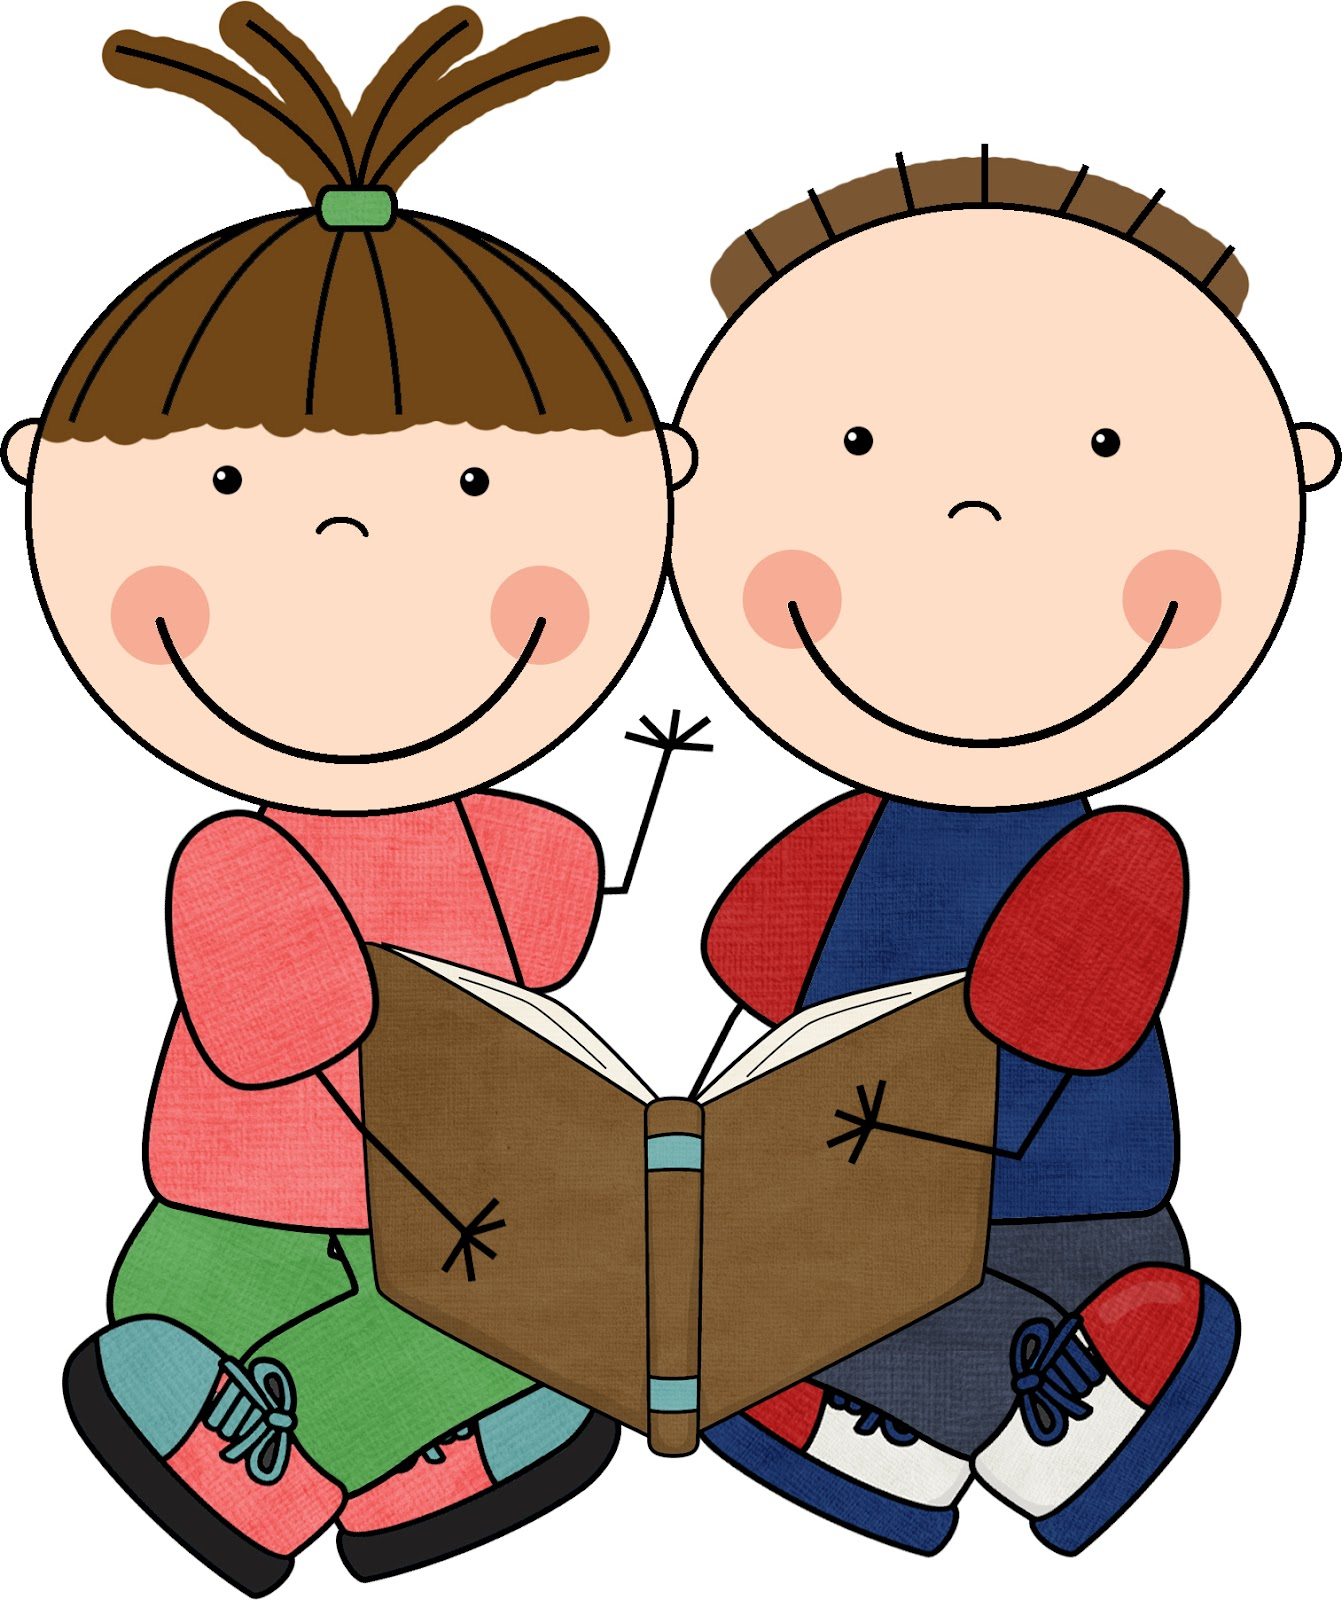 Free Book Buddies Cliparts, Download Free Clip Art, Free.